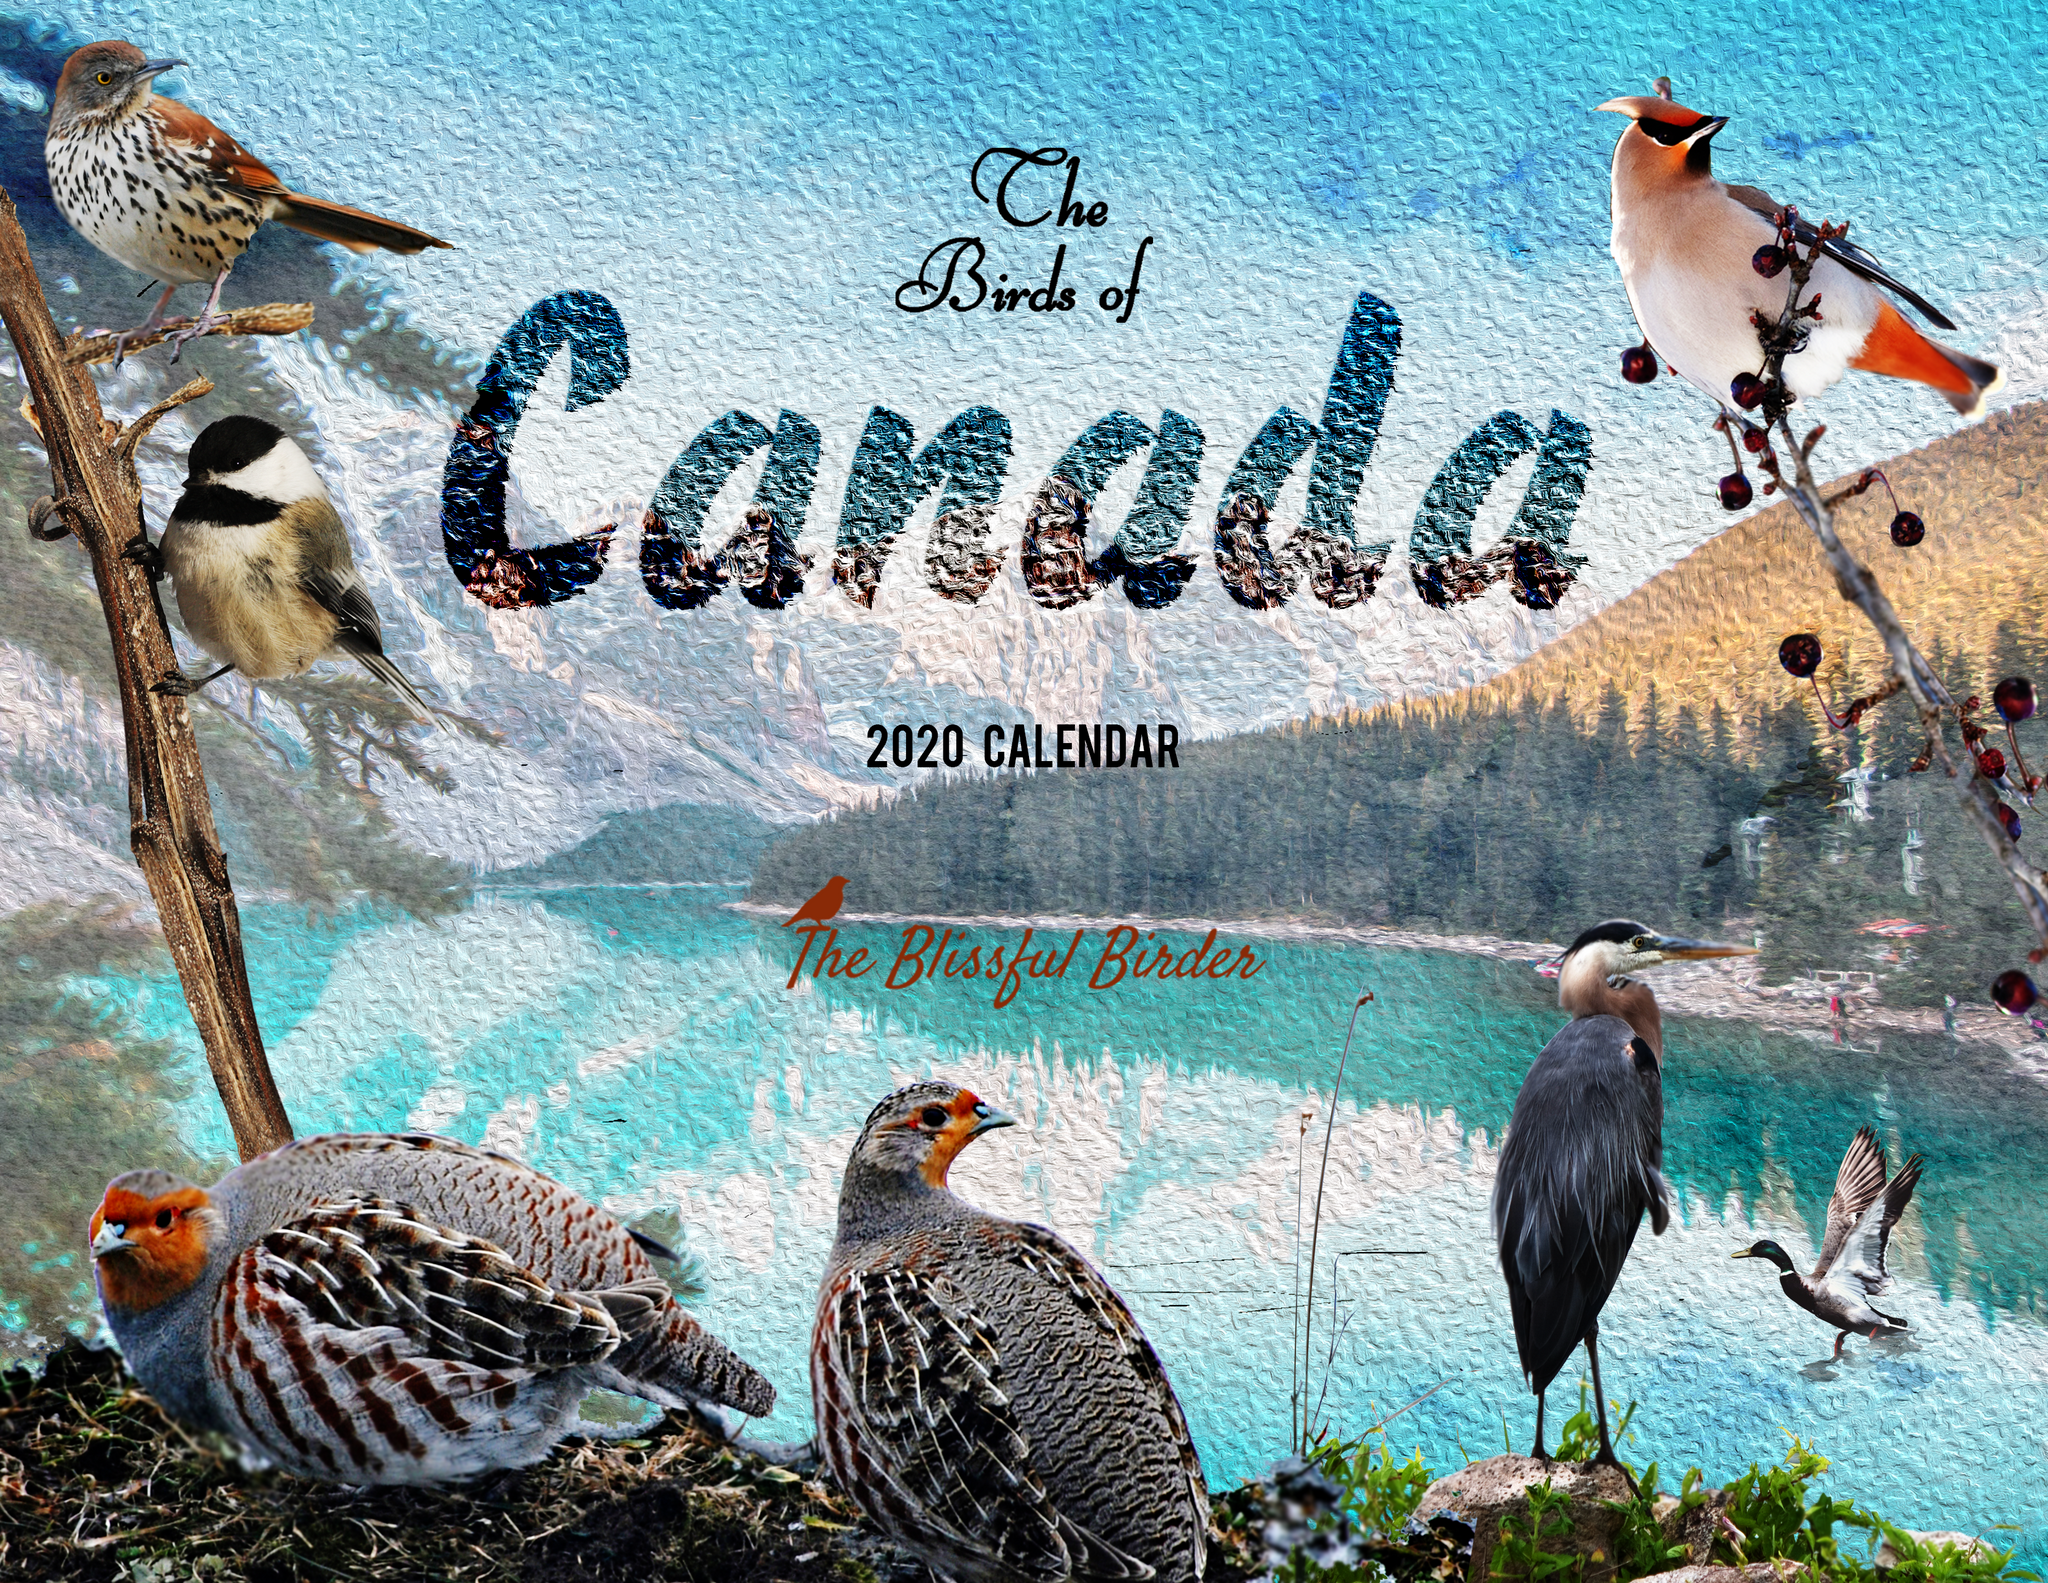 The Birds of Canada: 2020 Calendar